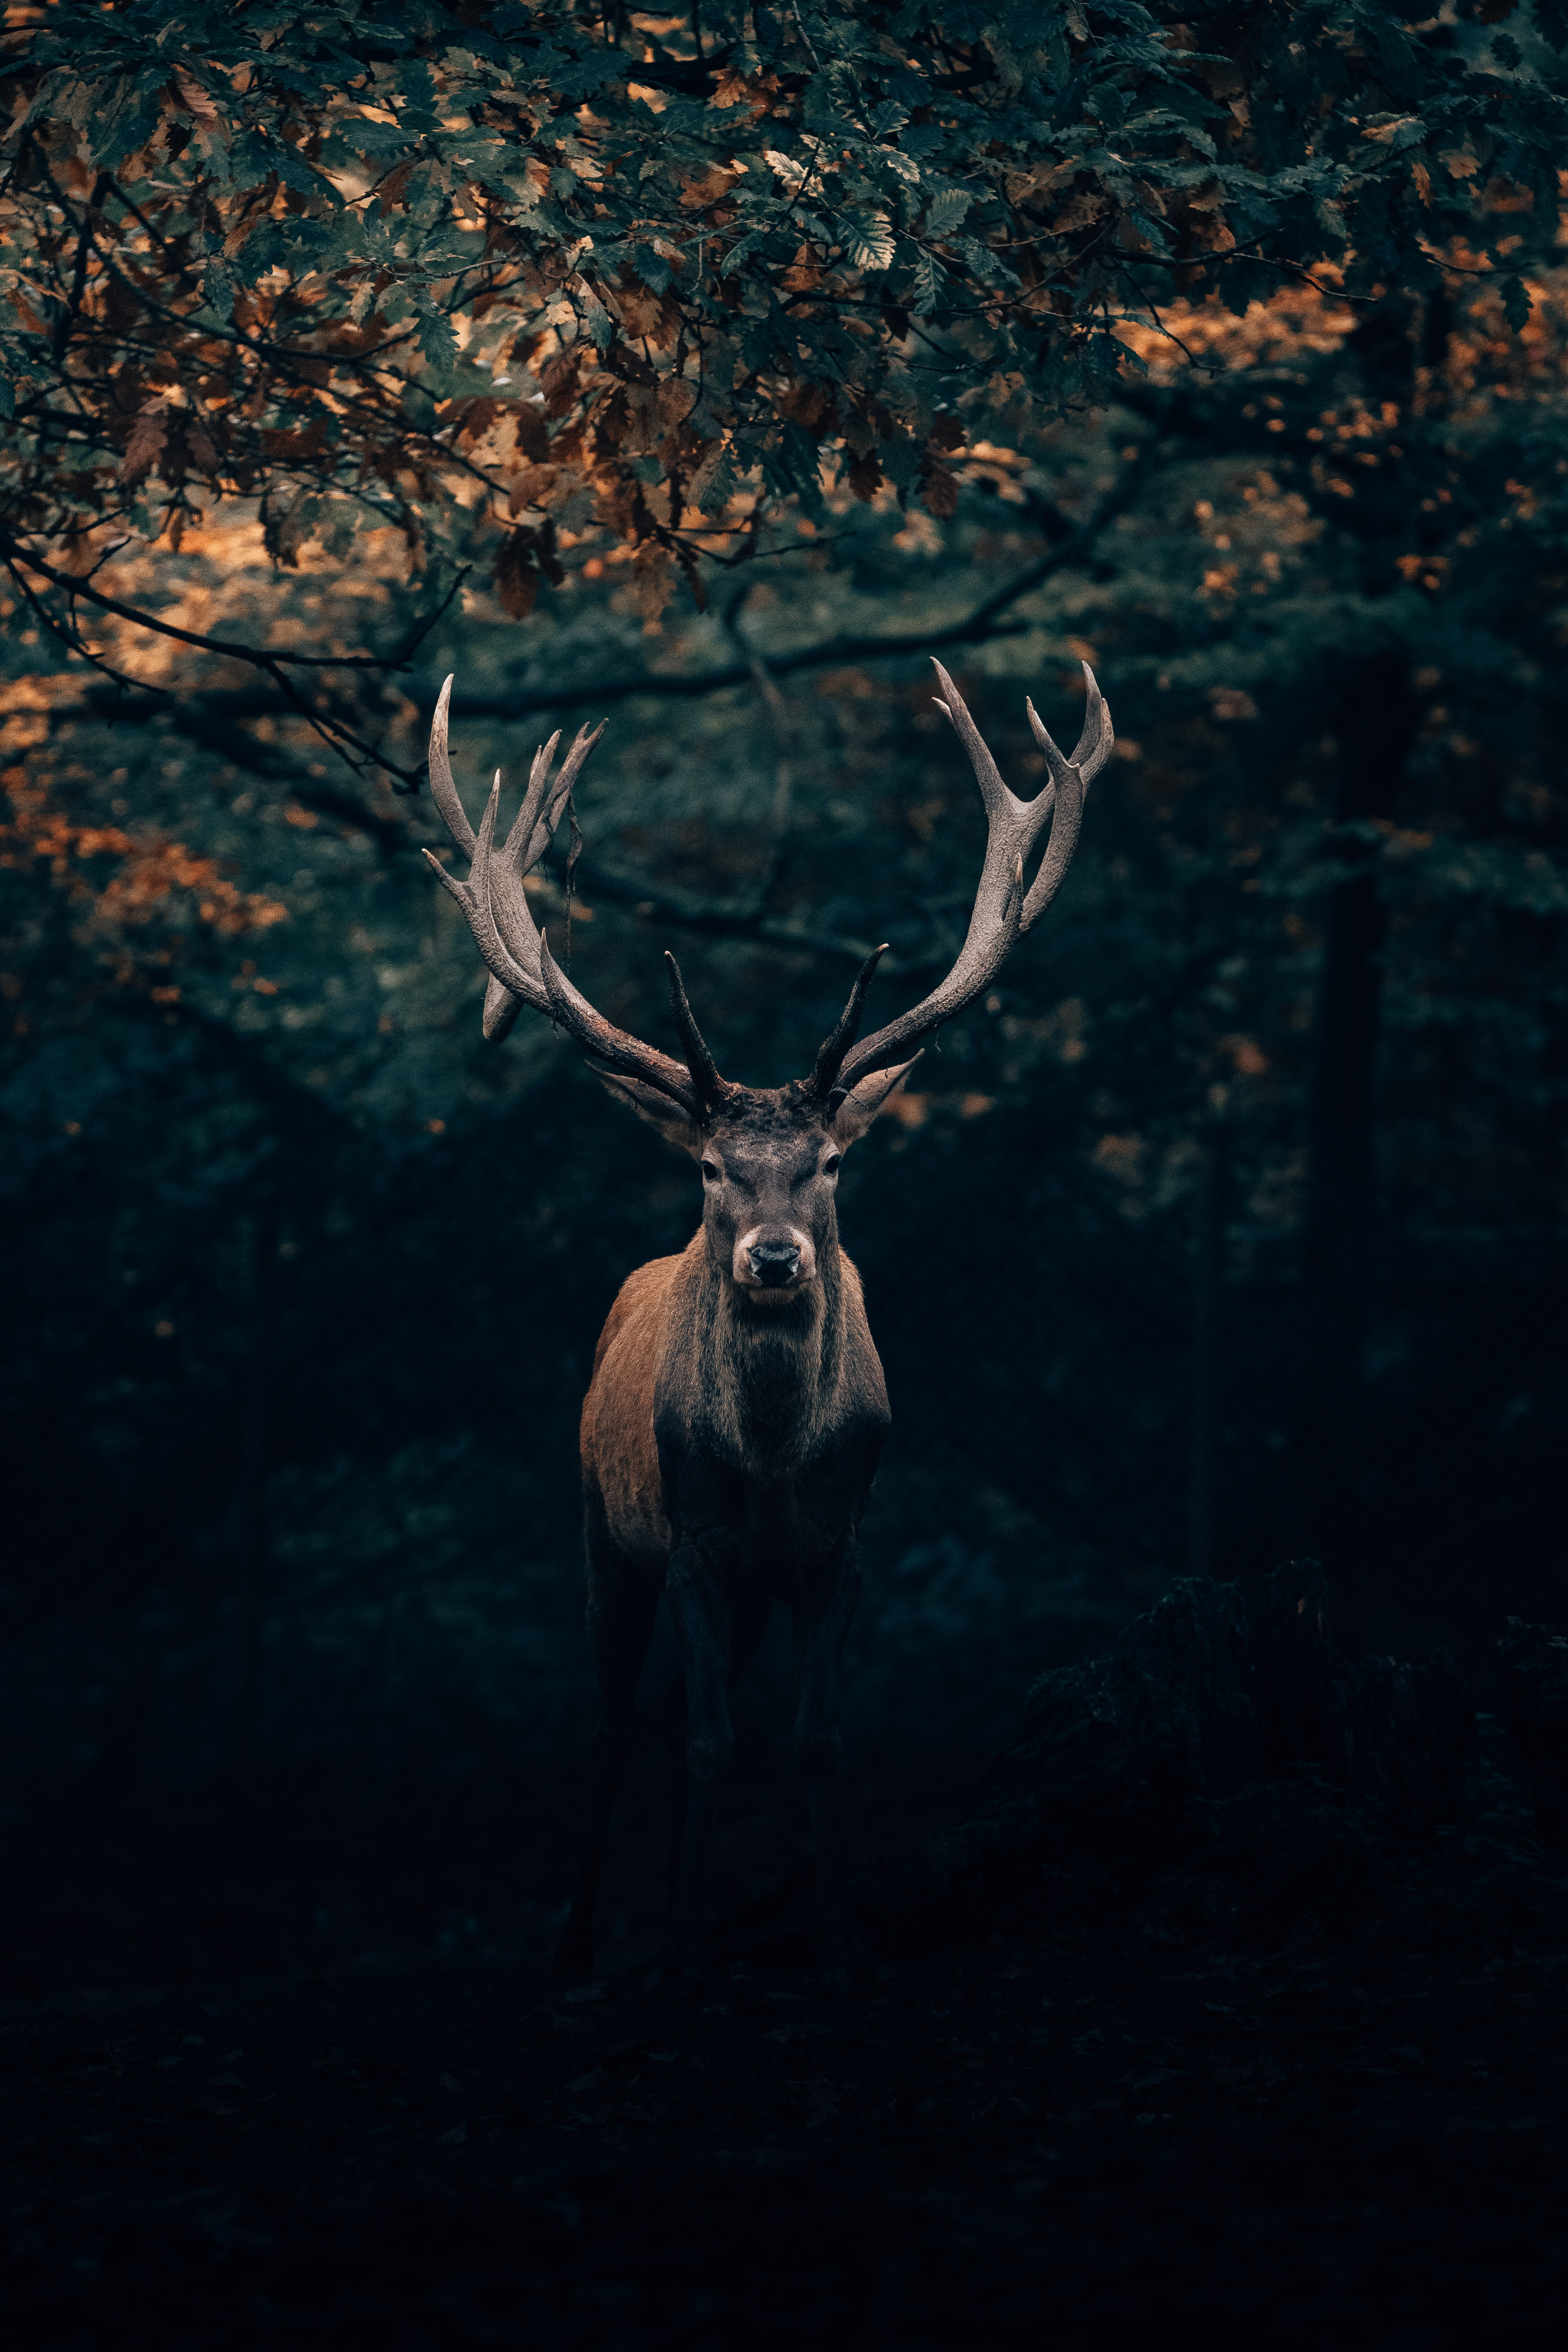 52590 download wallpaper Animals, Deer, Wildlife, Horns, Branches, Forest screensavers and pictures for free